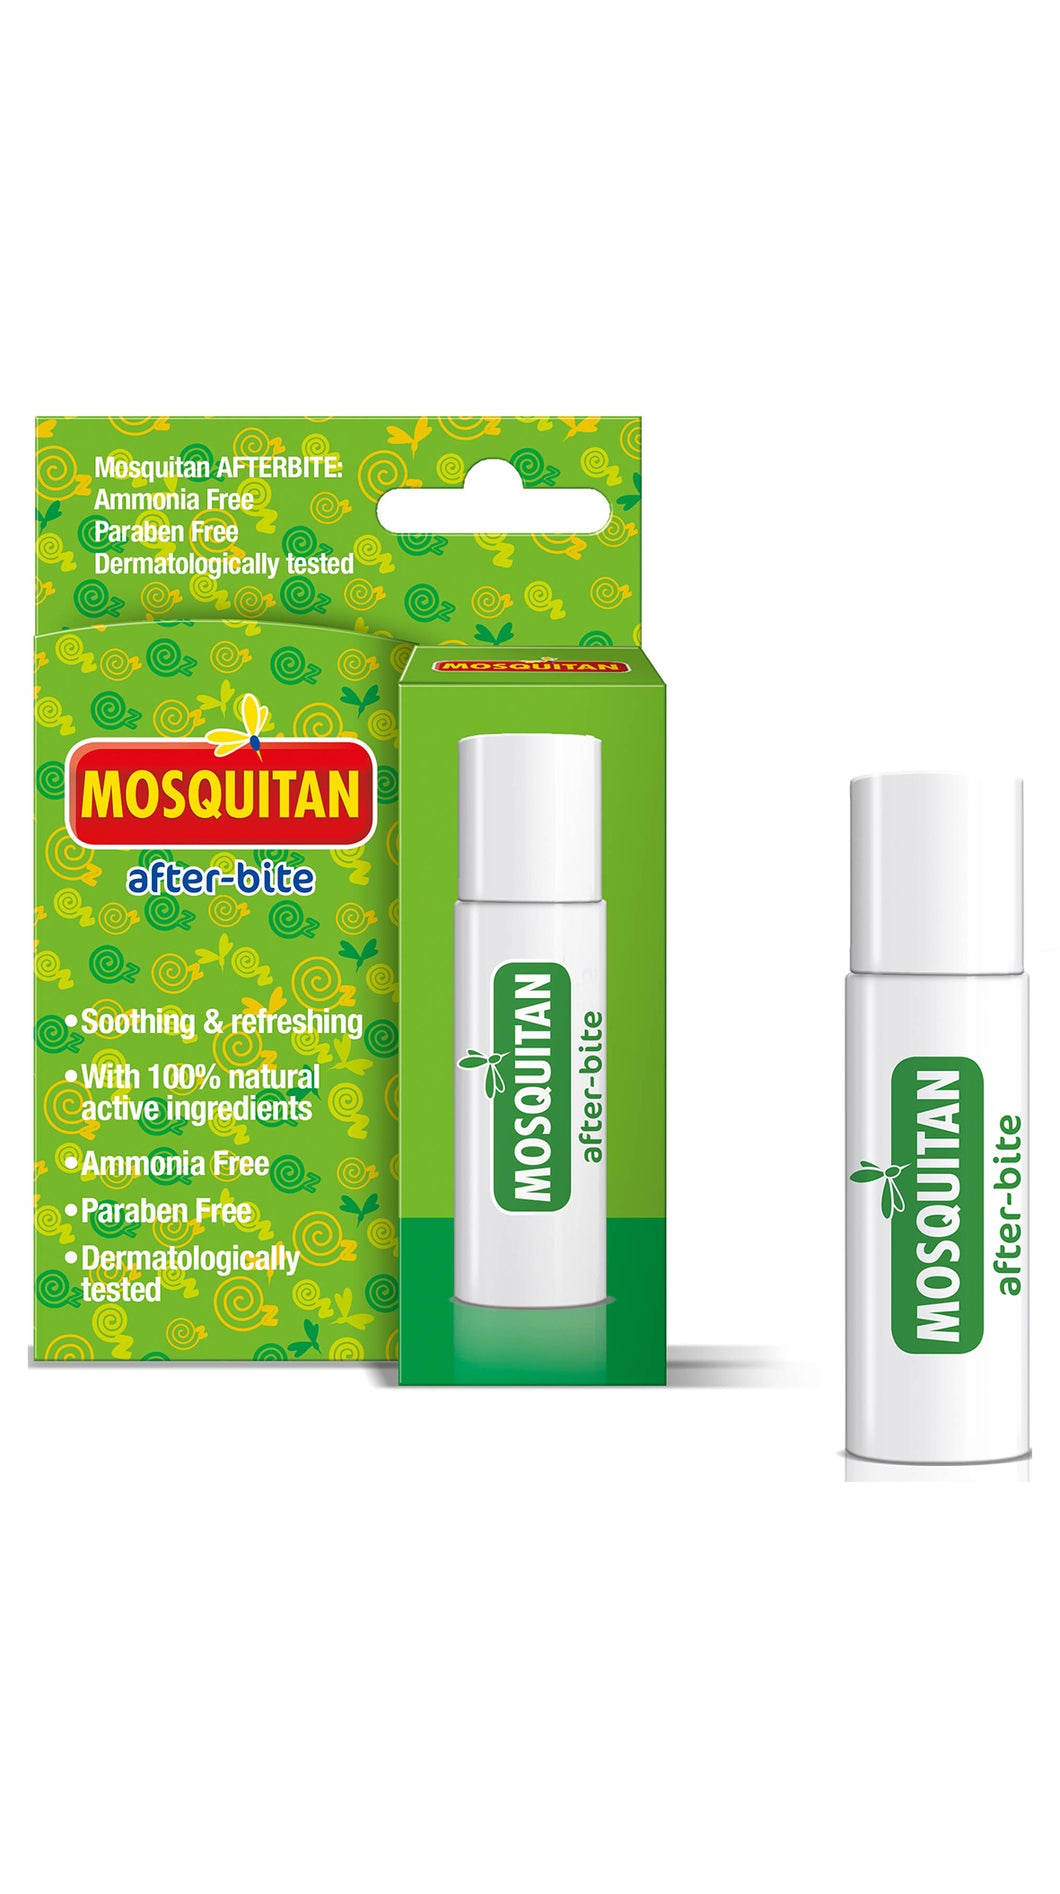 Mosquitan Roll-On After Bite Instant Insect Bite Relief 100% Natrual Active Ingredients 20ML